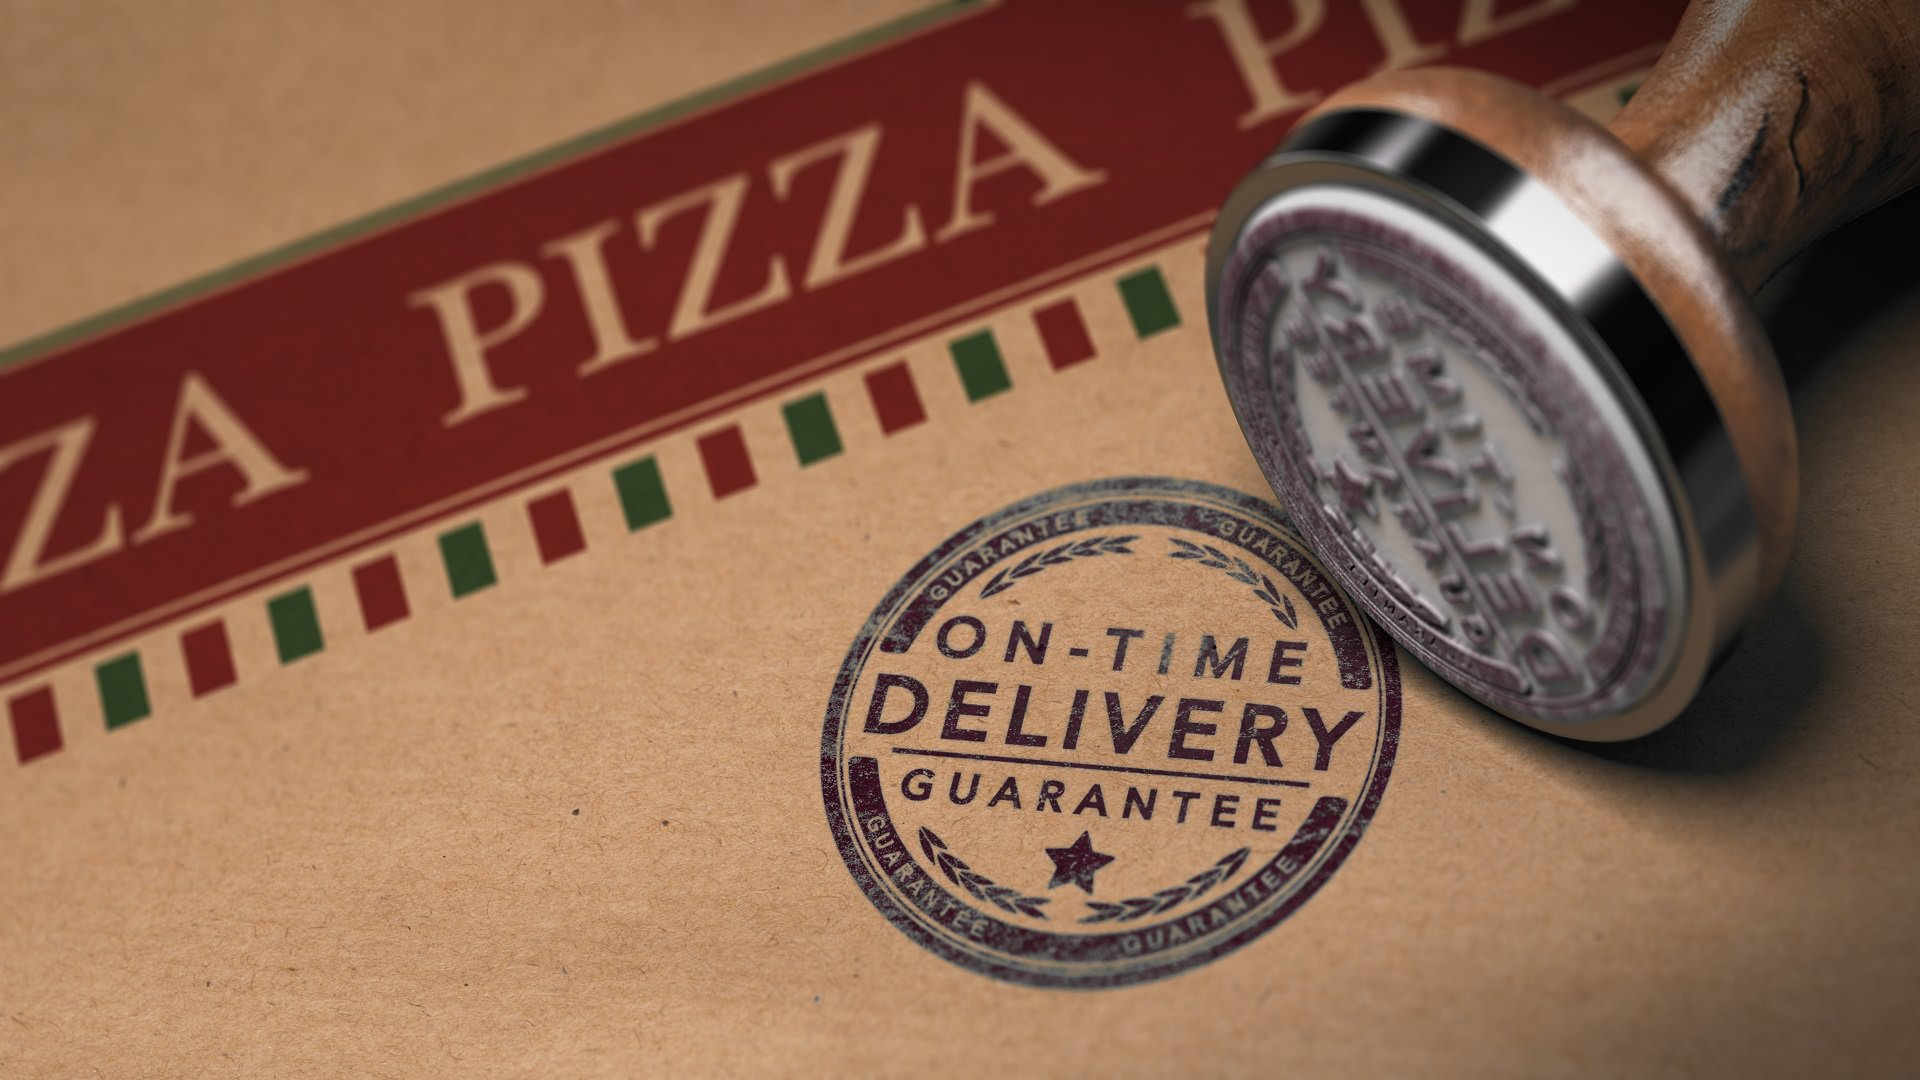 Silver Palate Pizza Delivery - Westford MA